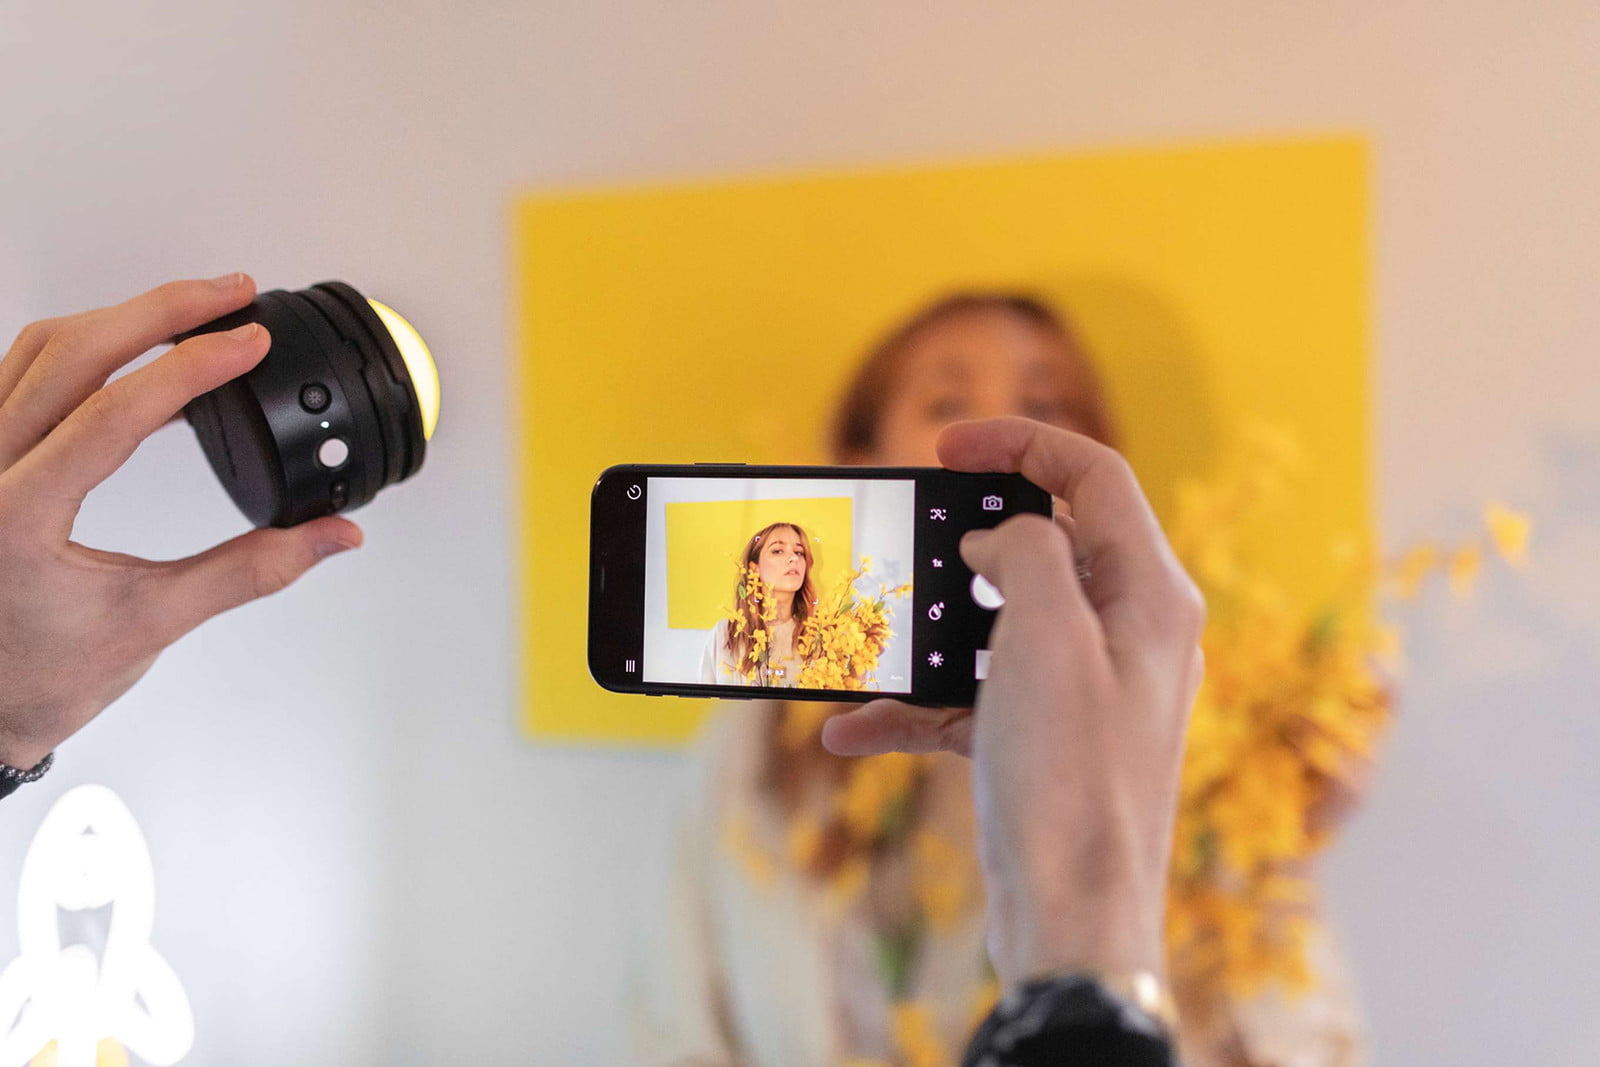 Profoto puts sunshine in your pocket with photo studio-quality smartphone lights